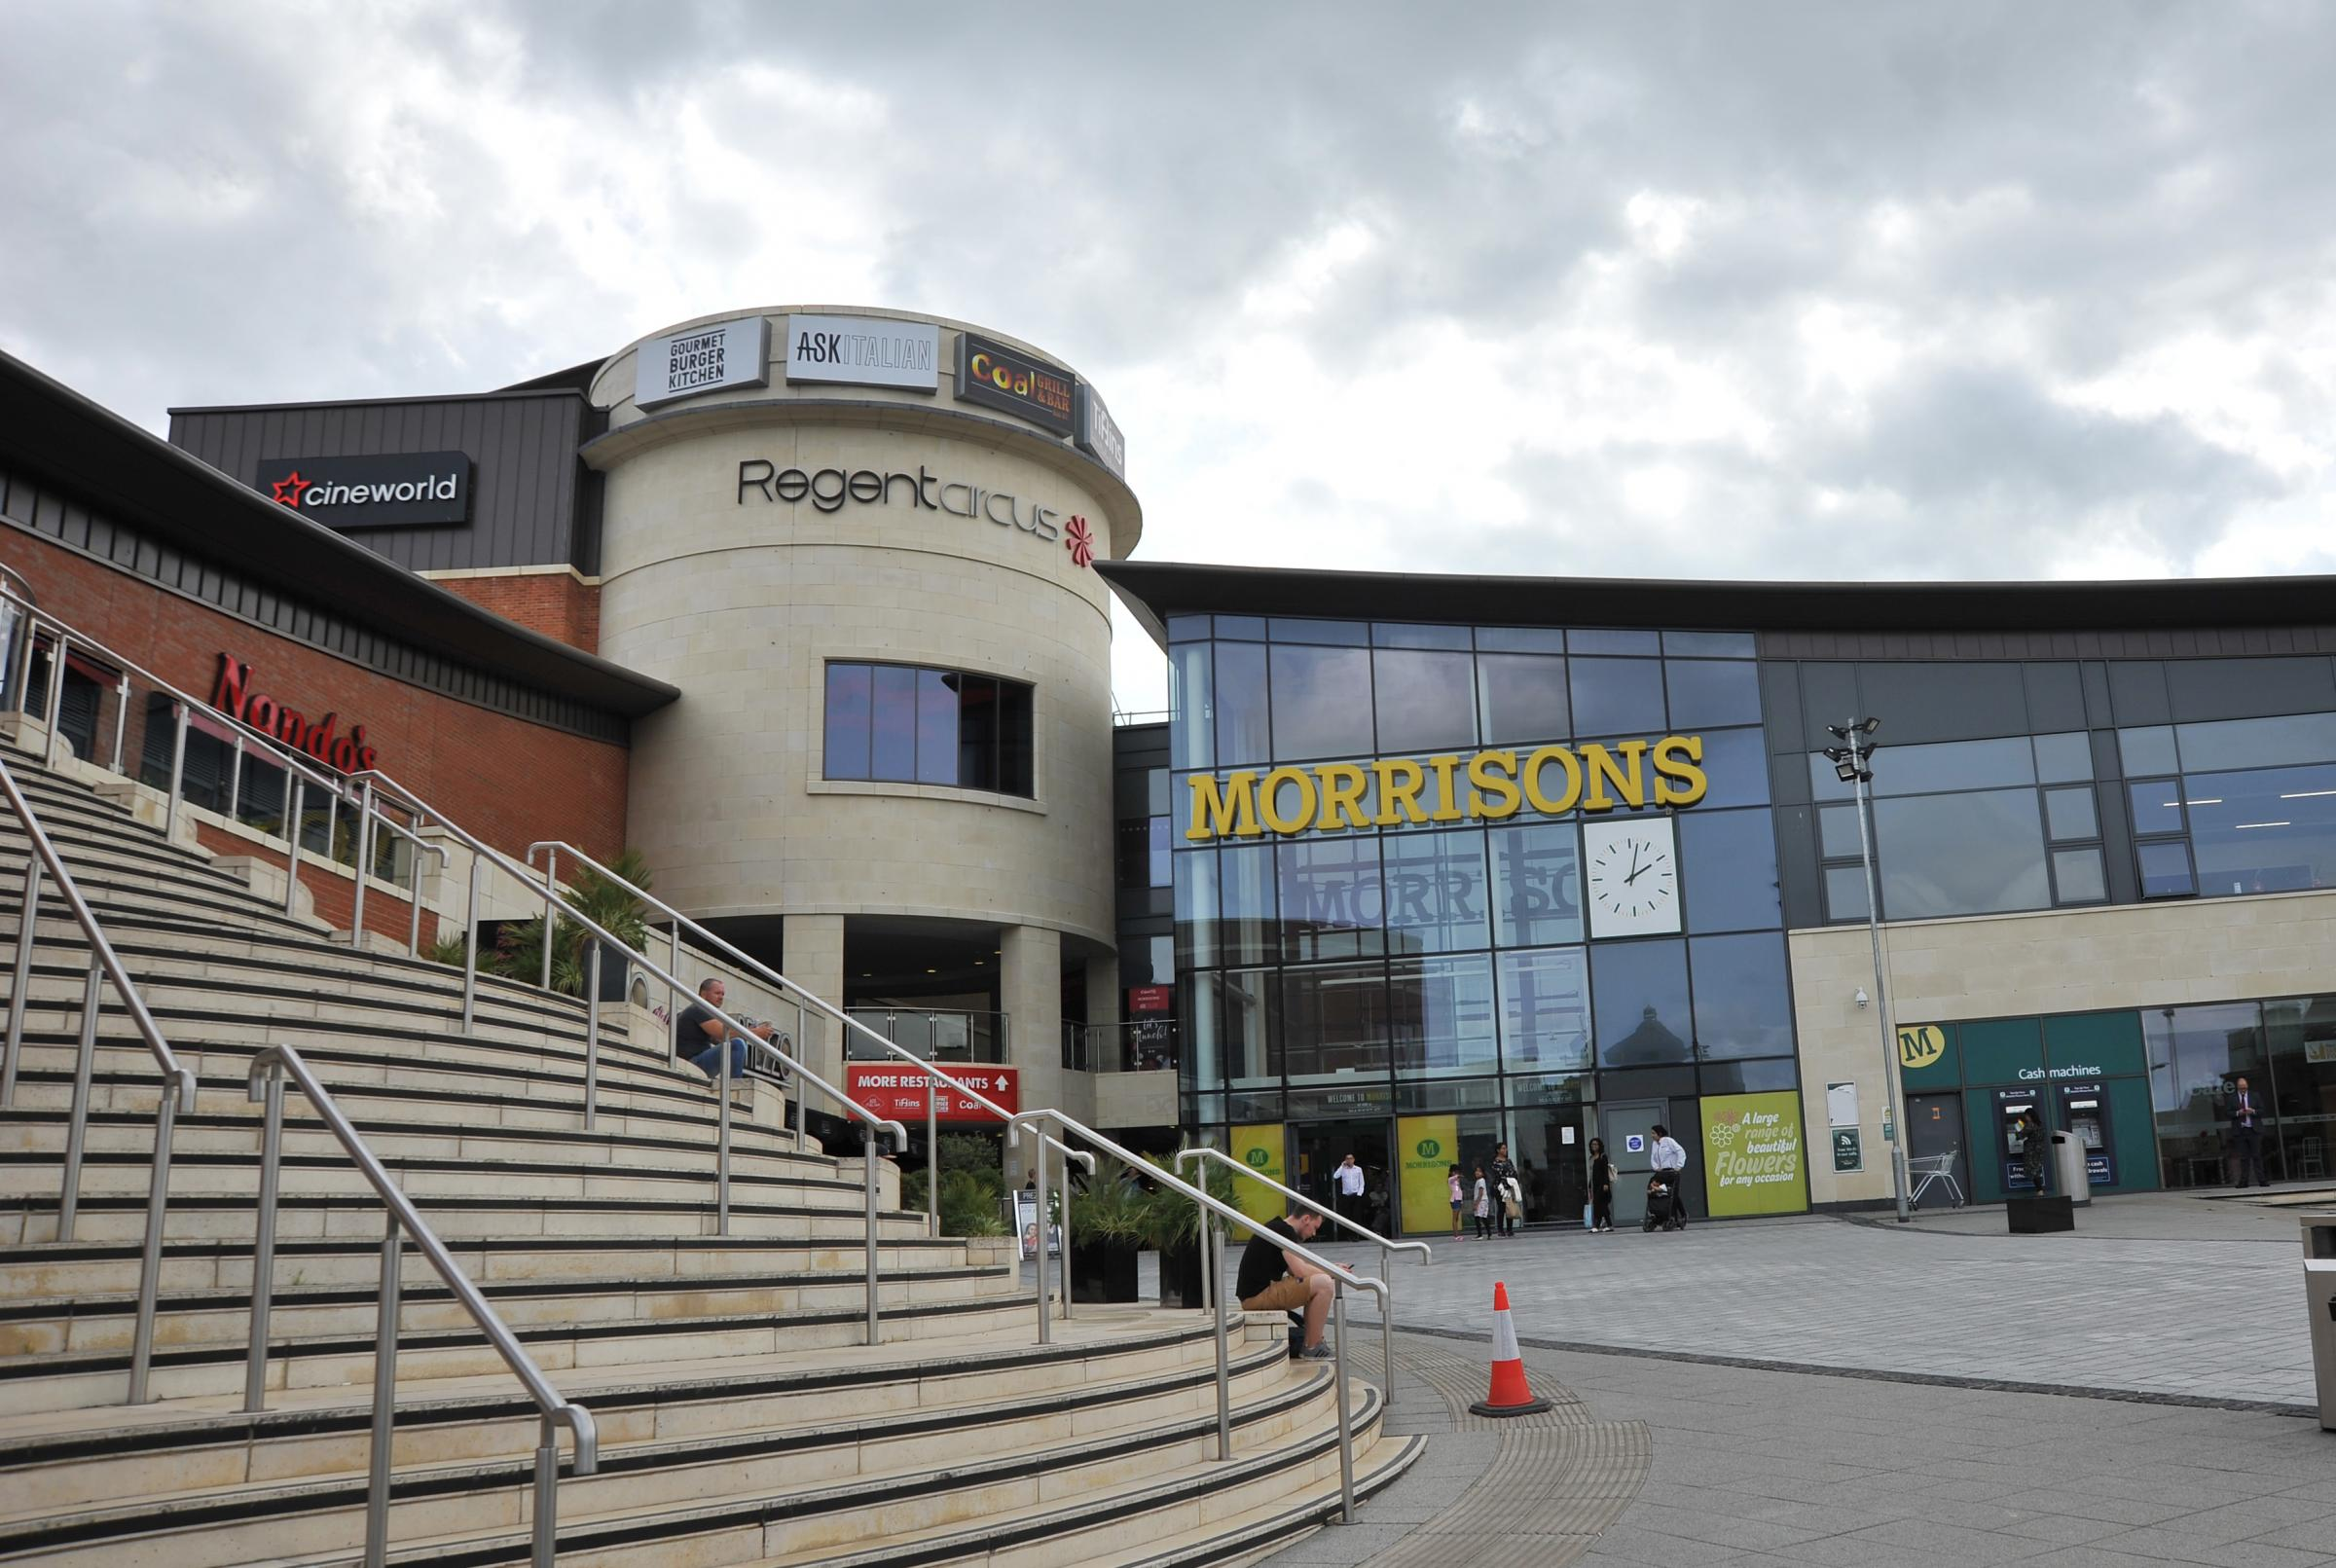 MORRISONS CLOSURE: Dismay as Swindon Regent Circus store confirms it will shut